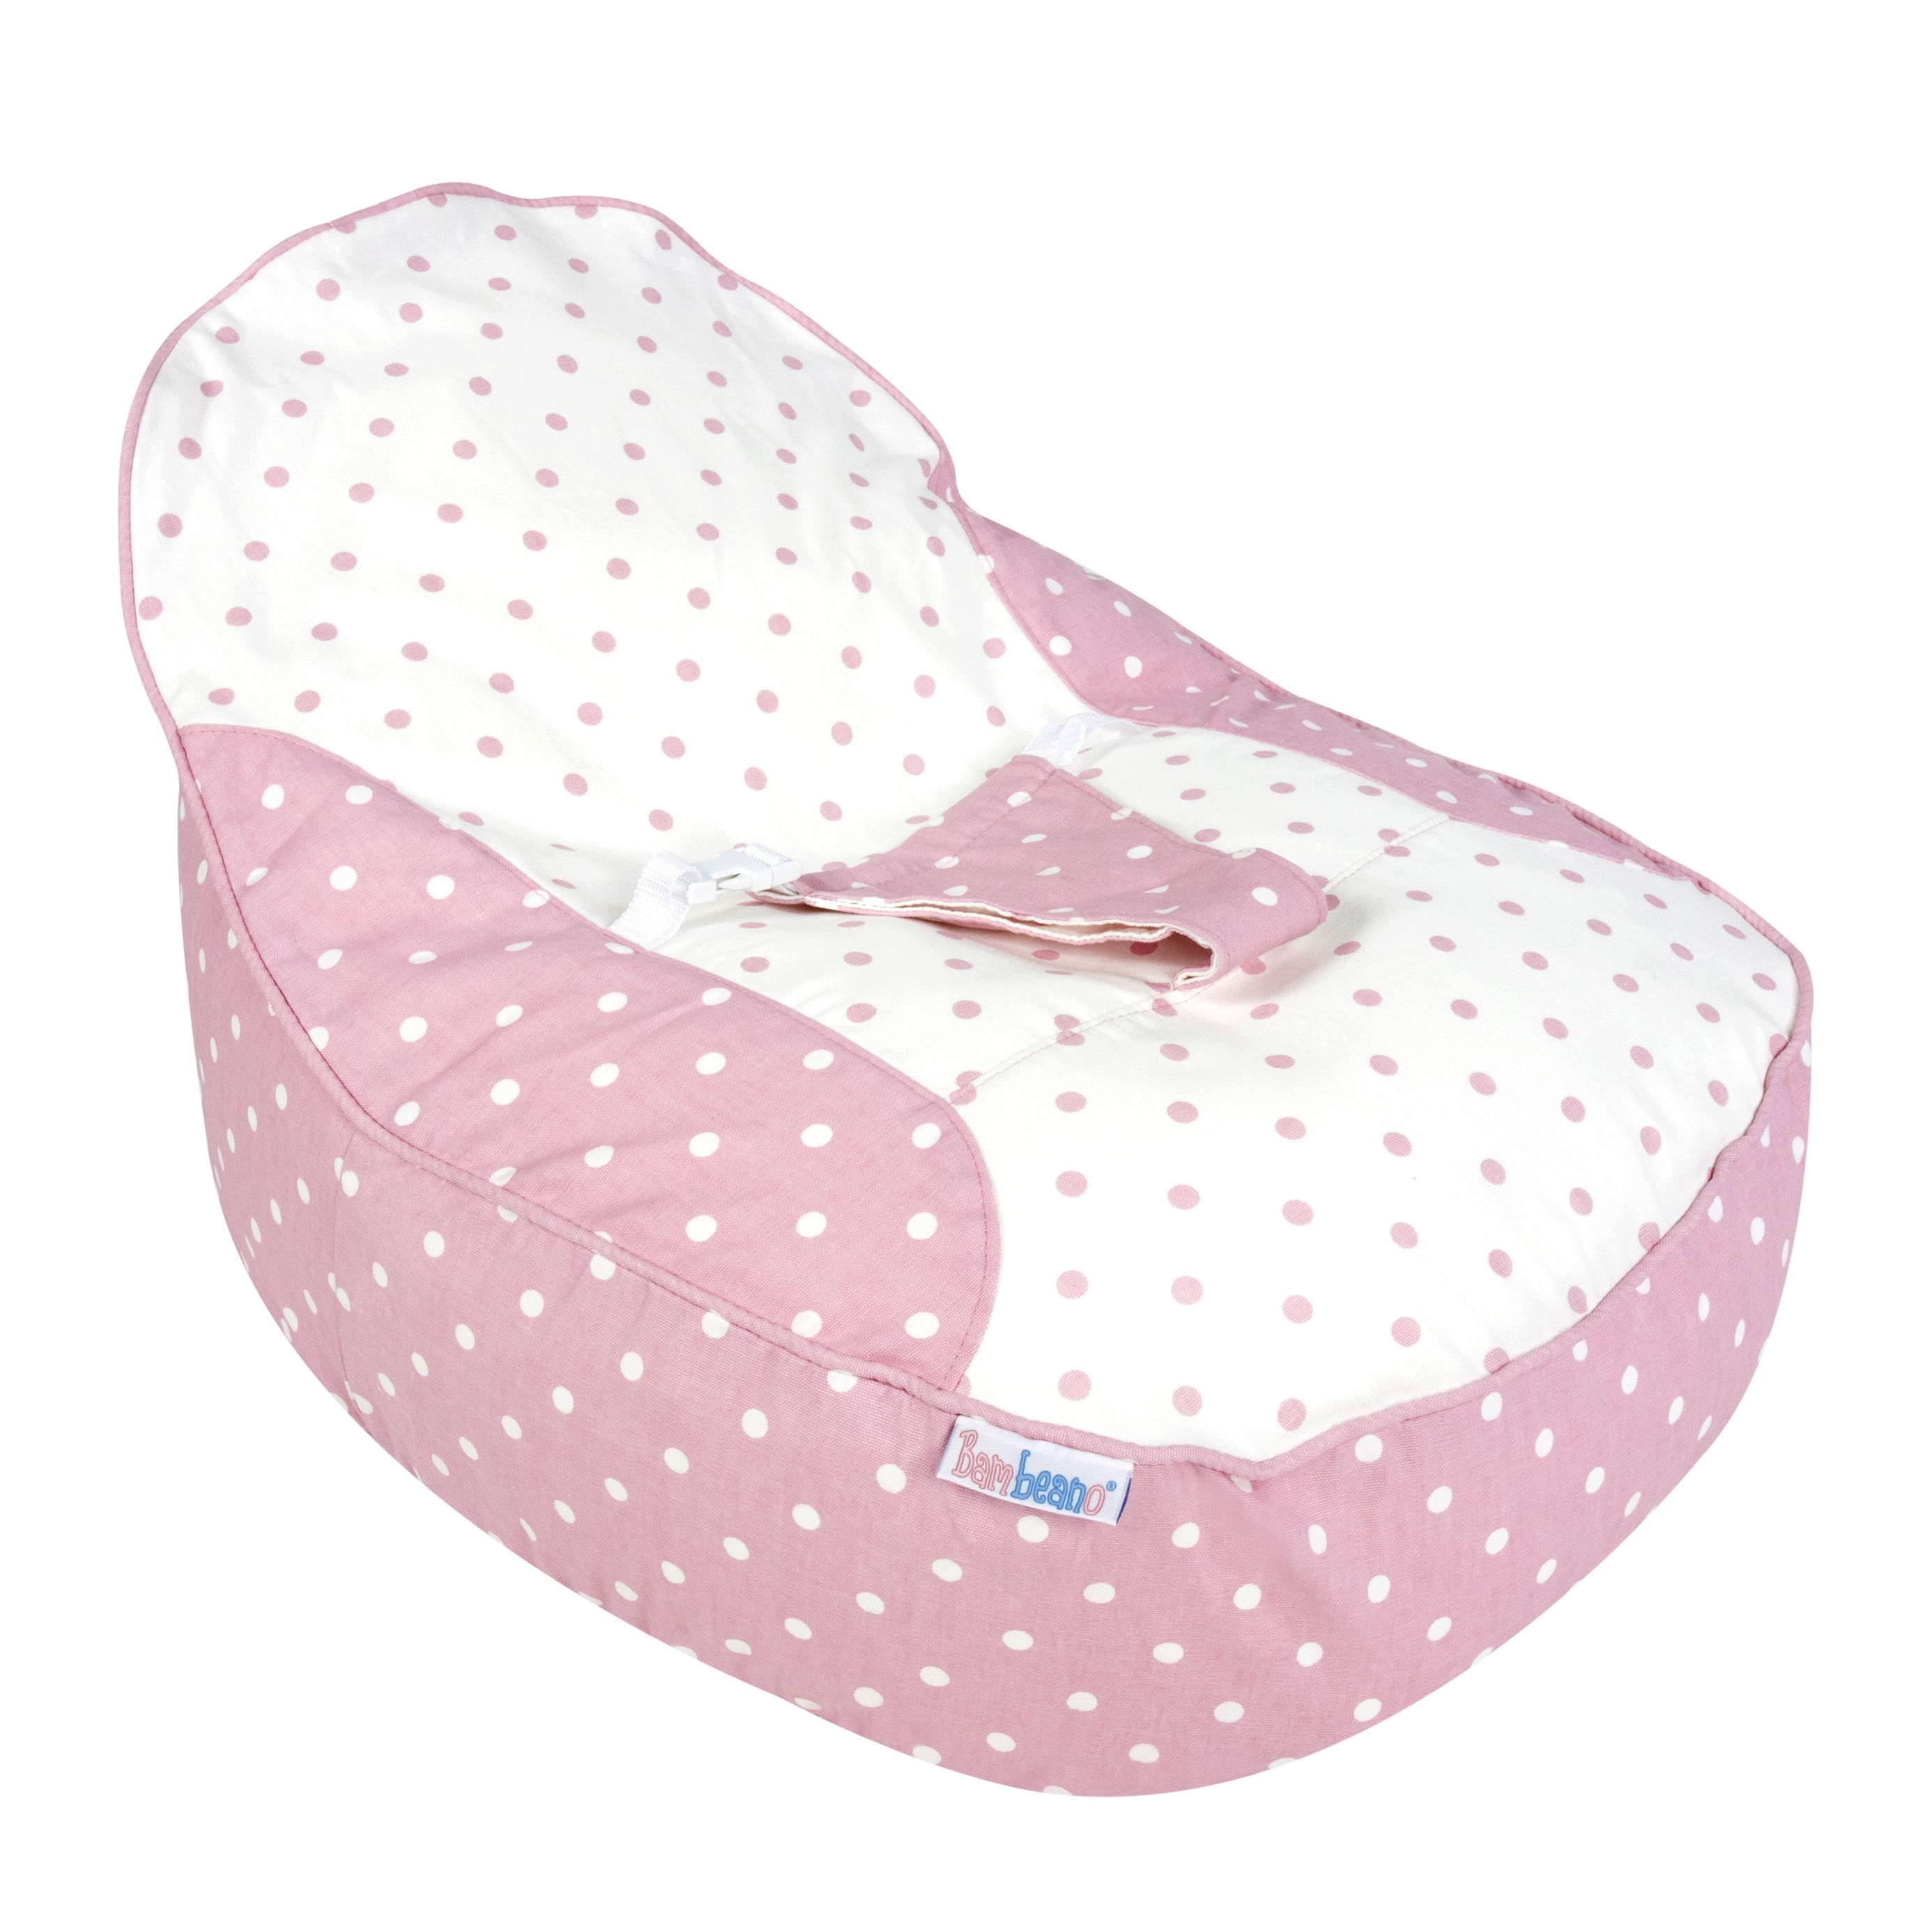 Stupendous Bambeano Baby Bean Bag Babys First Christmas Baby Bean Gmtry Best Dining Table And Chair Ideas Images Gmtryco